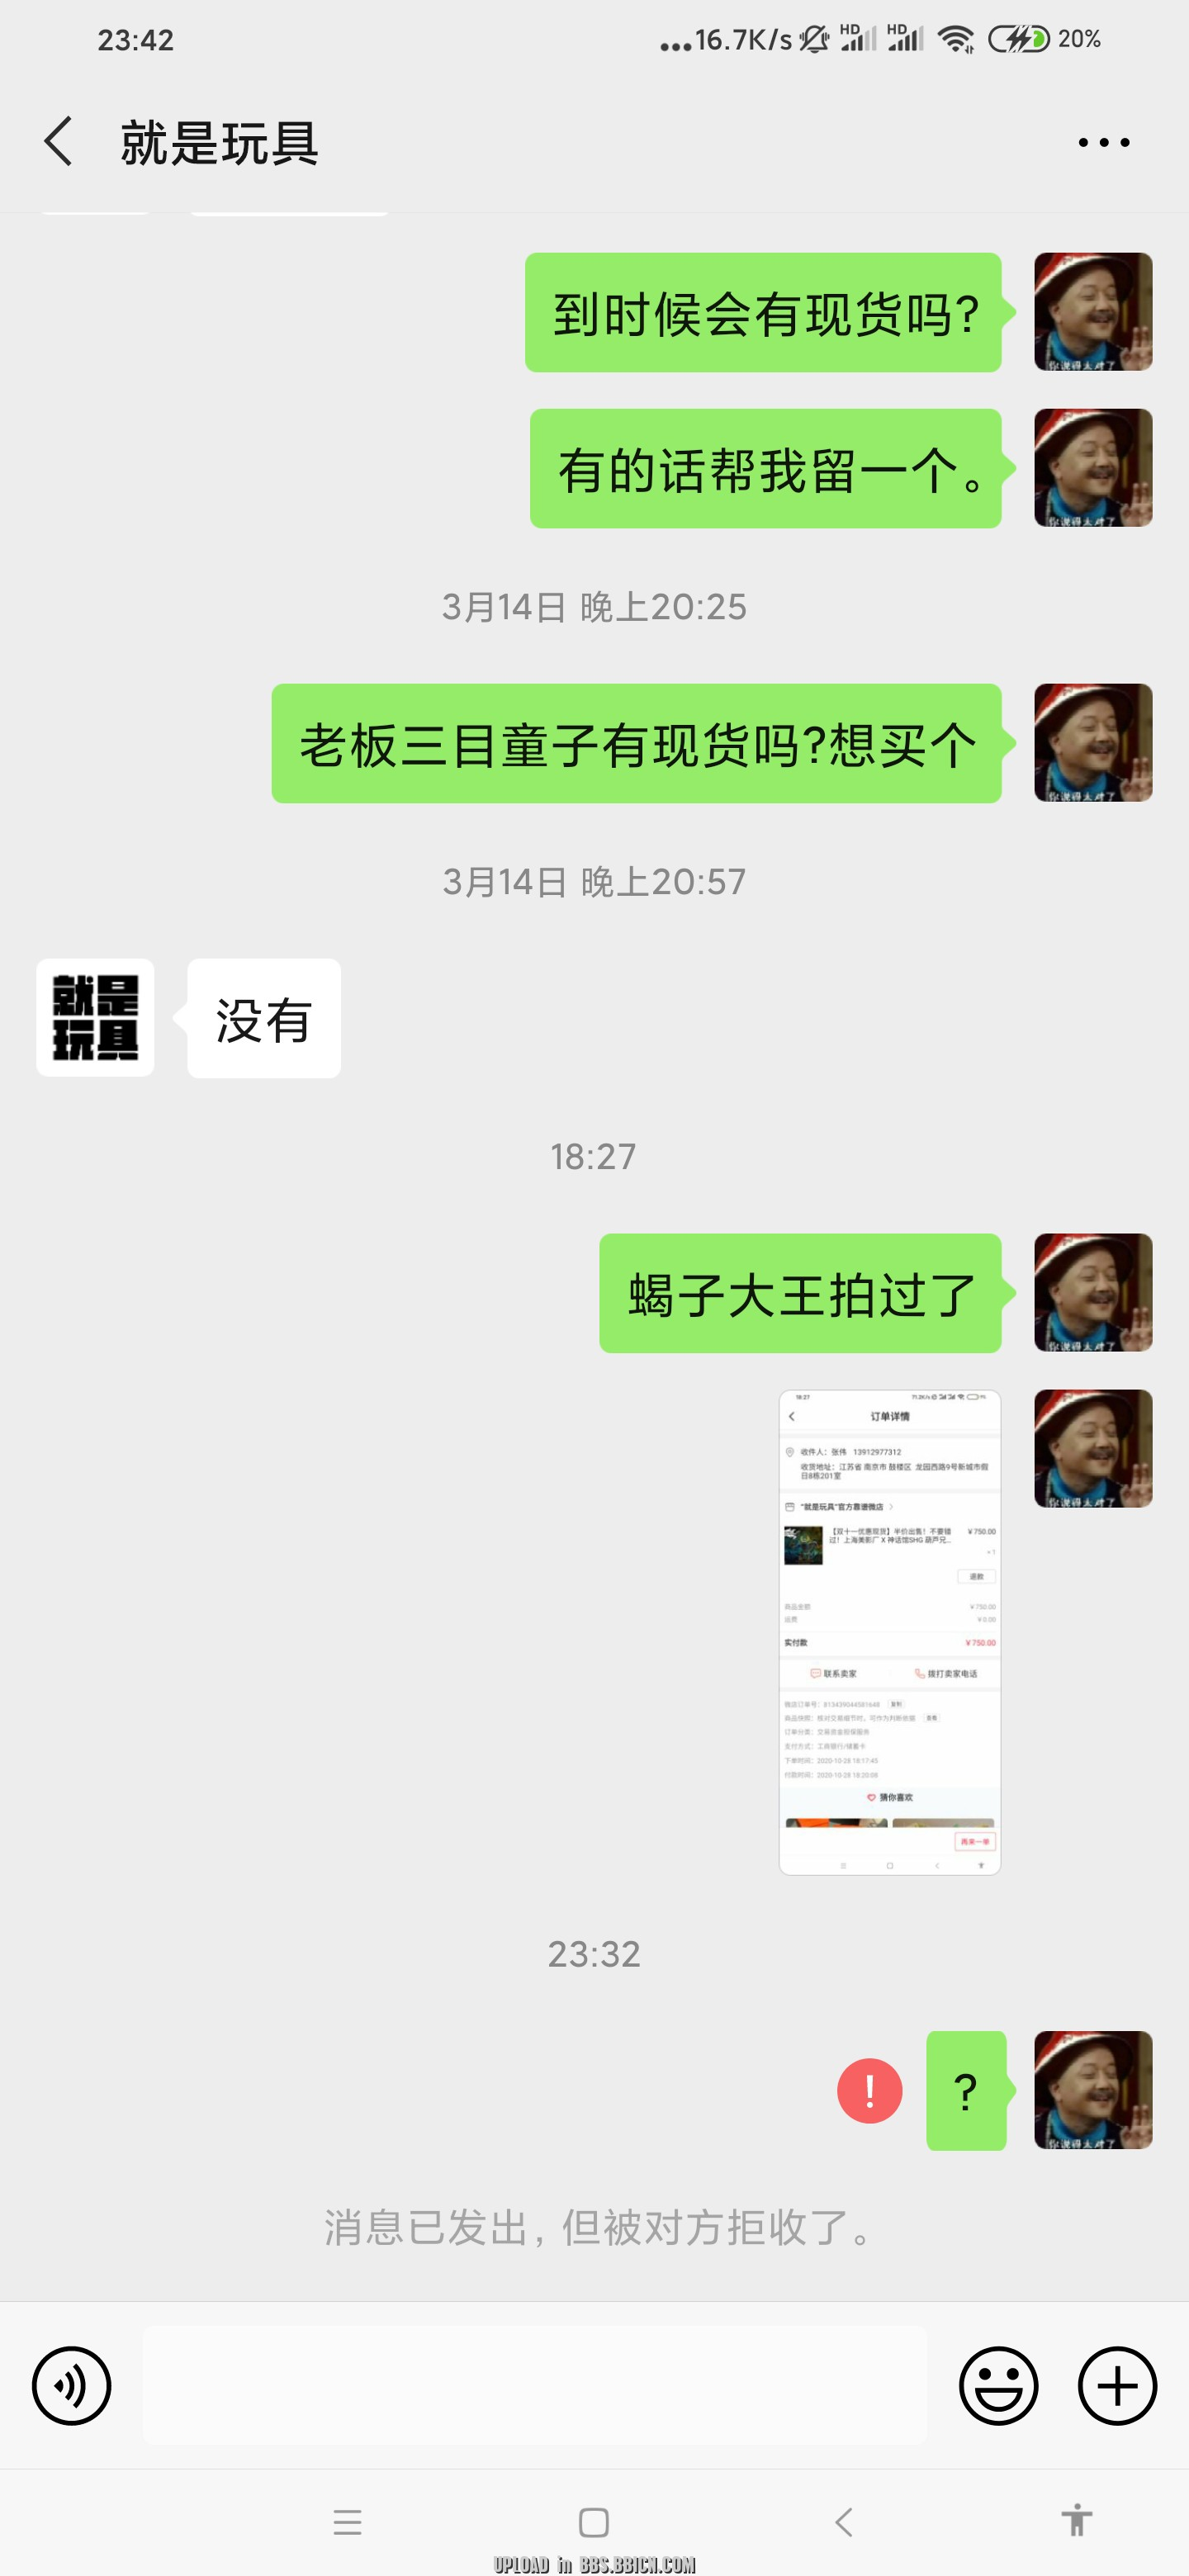 Screenshot_2020-10-28-23-42-47-406_com.tencent.mm.jpg